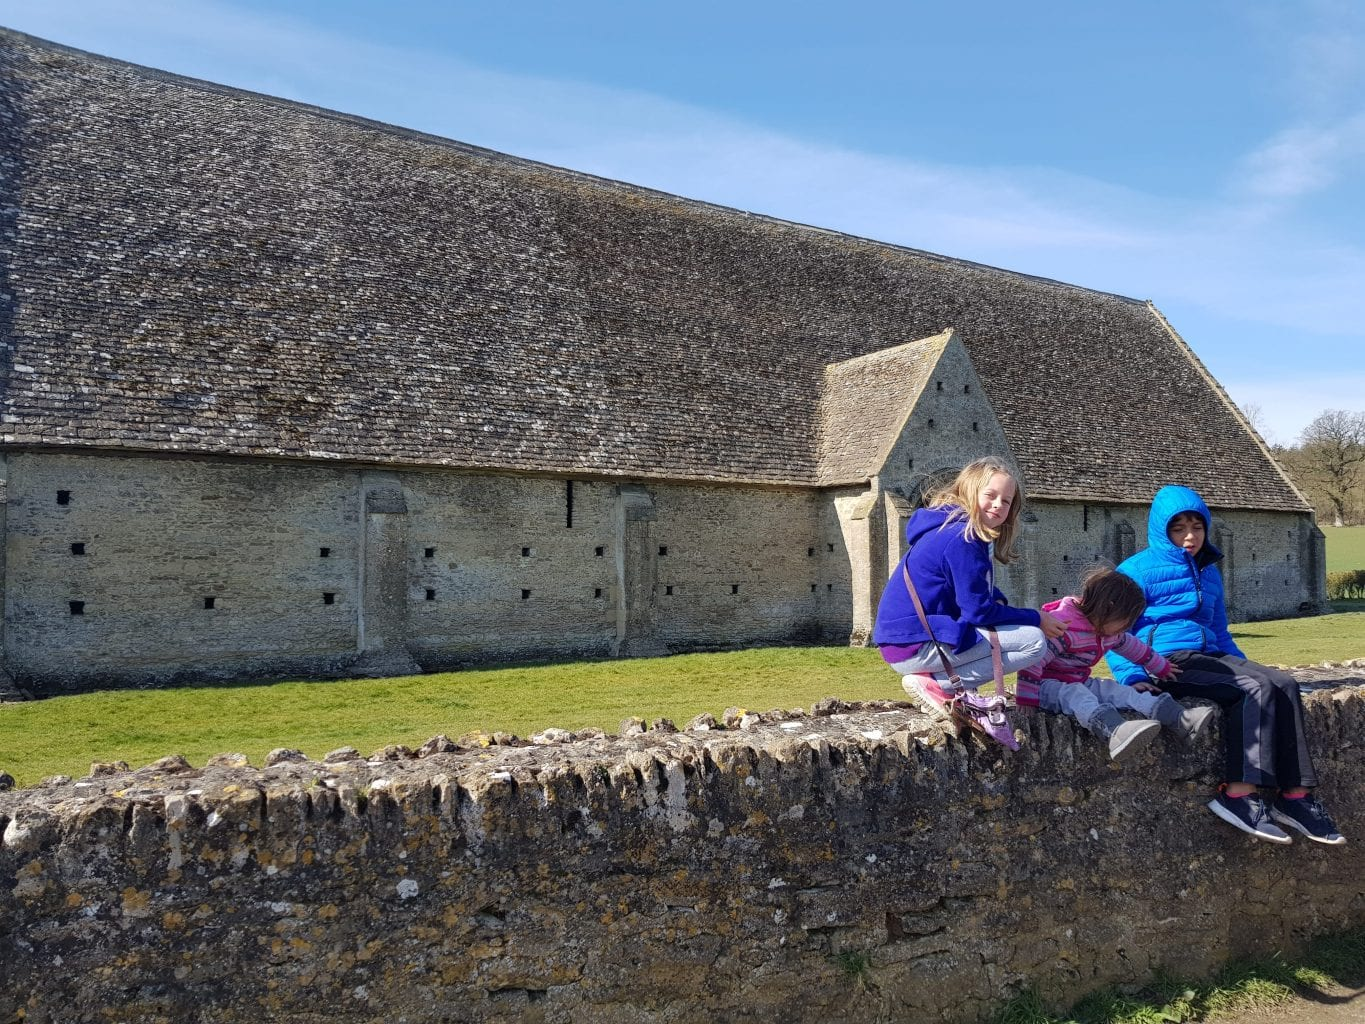 The Great Coxwell Tithe Barn